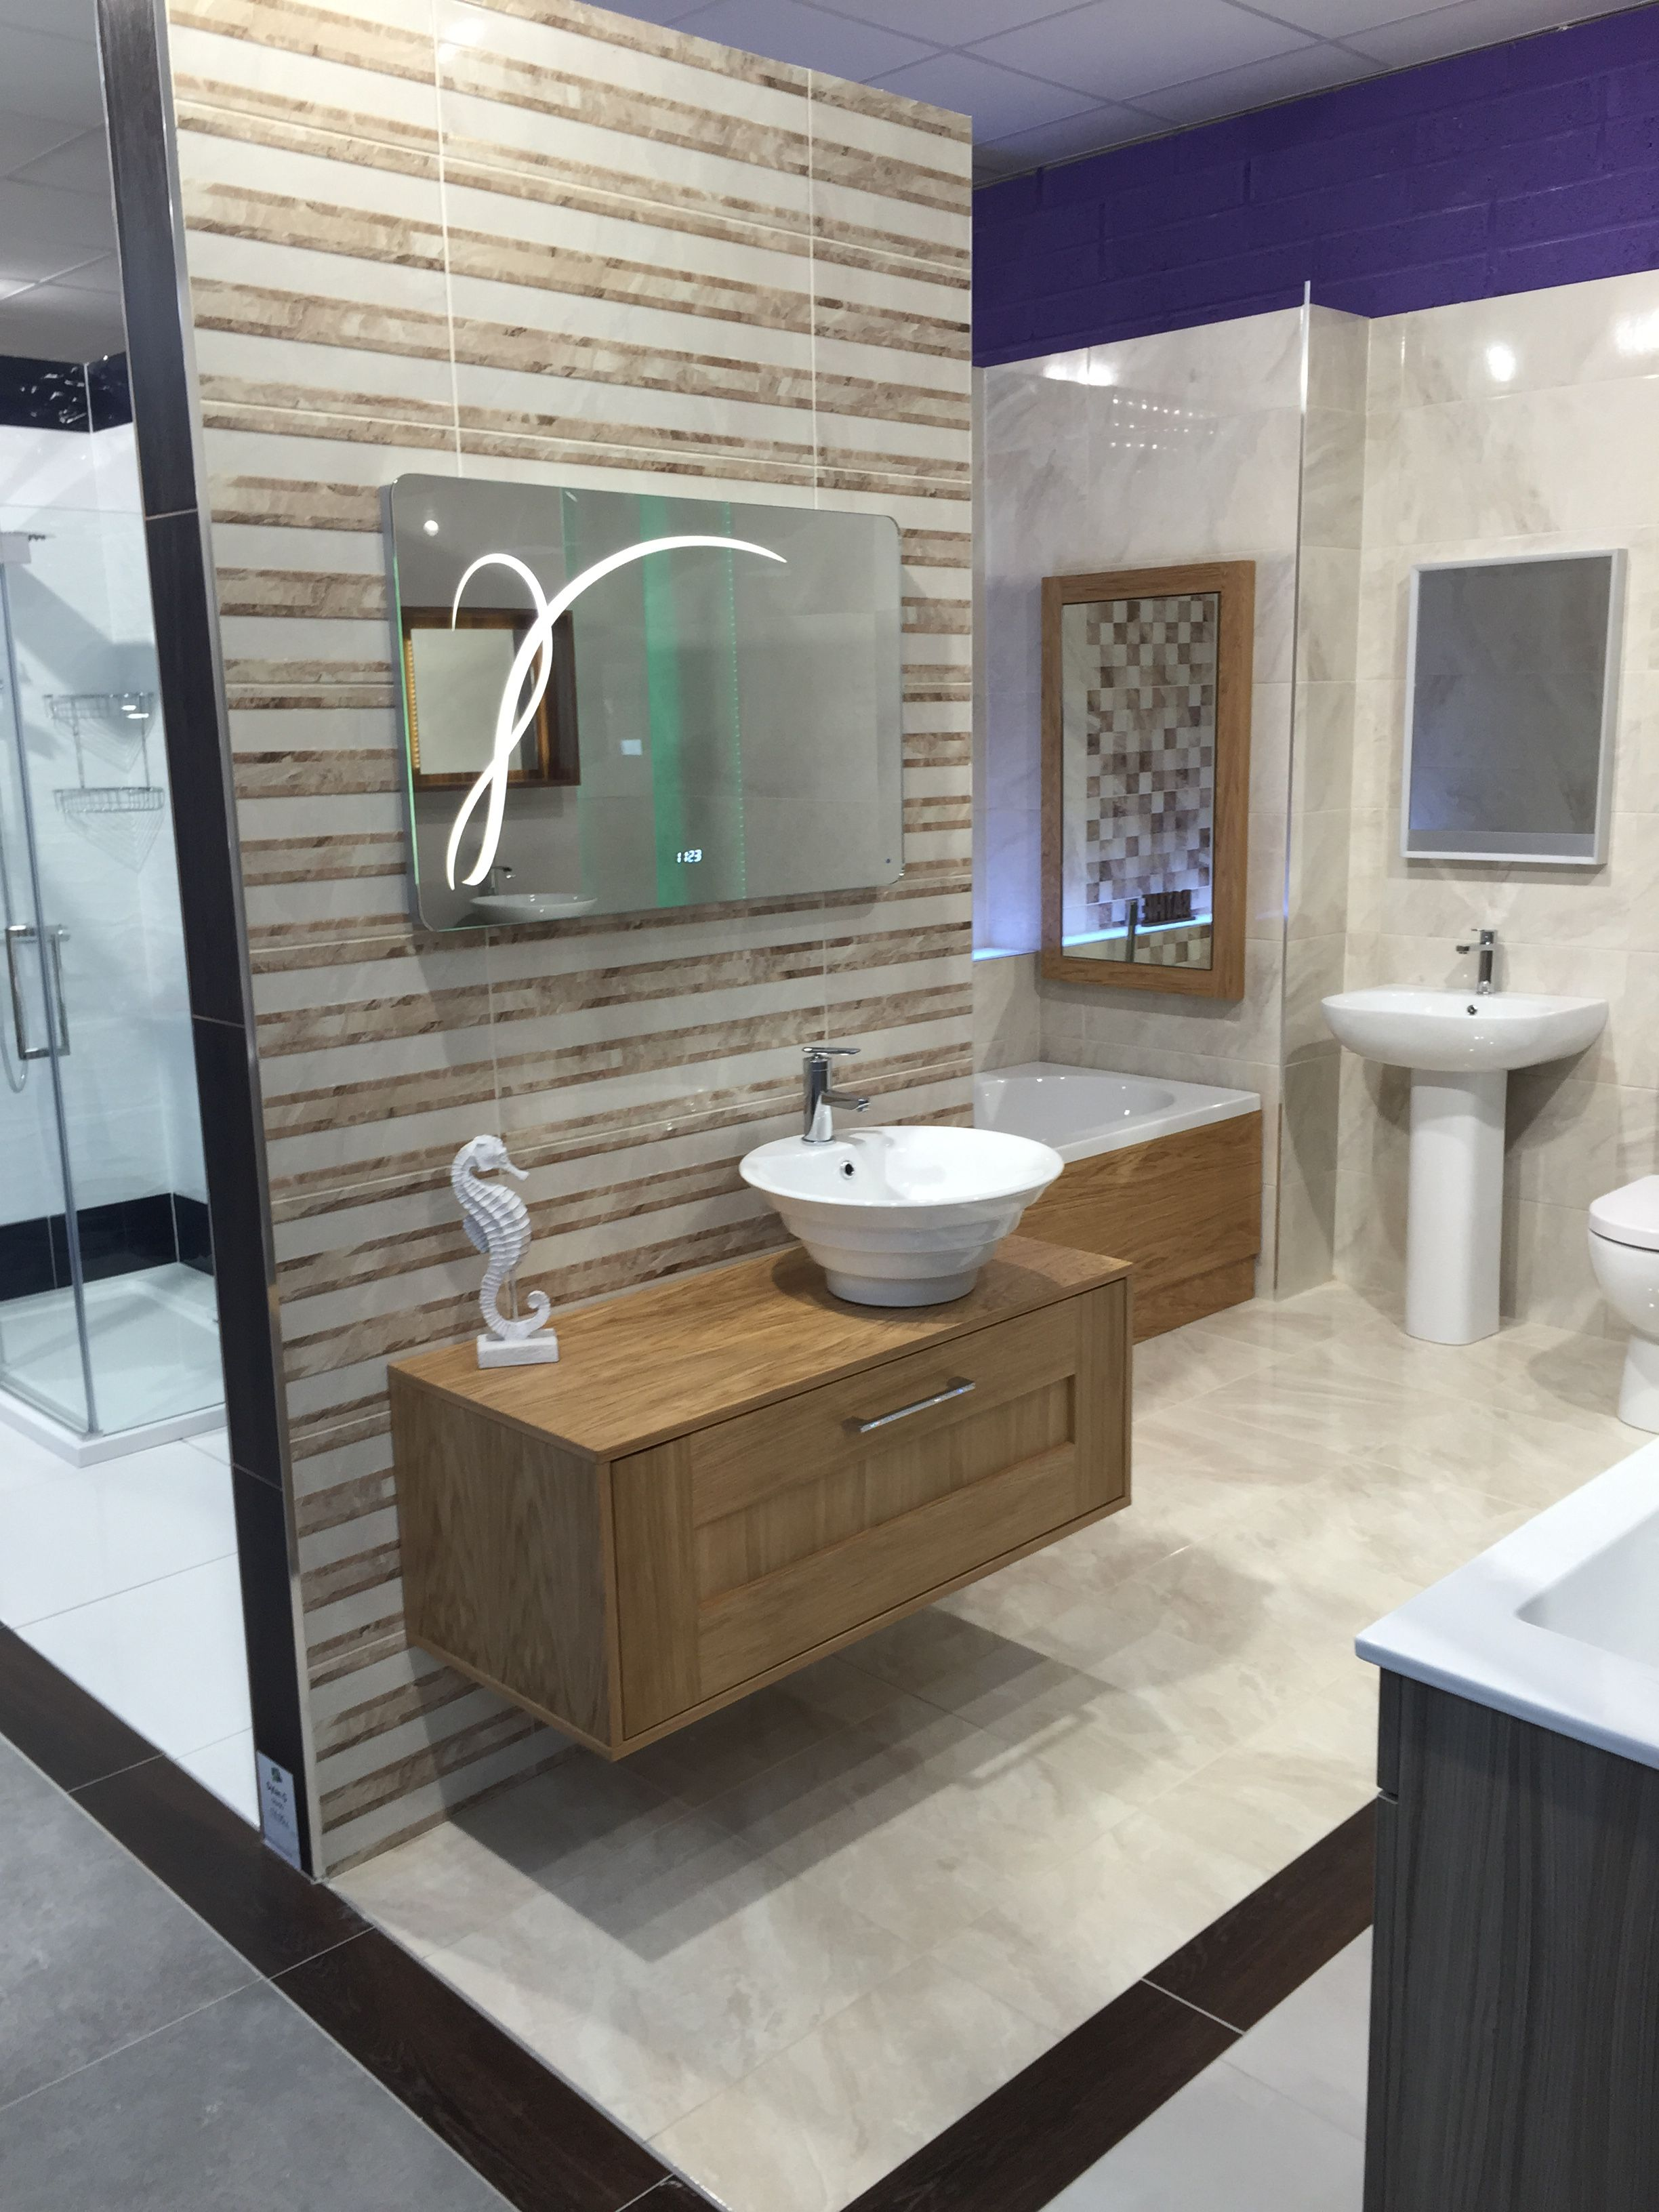 Custom Solid Oak Floating Vanity Unit With Counter Top Vanity Bowl Matching Bath Panel And